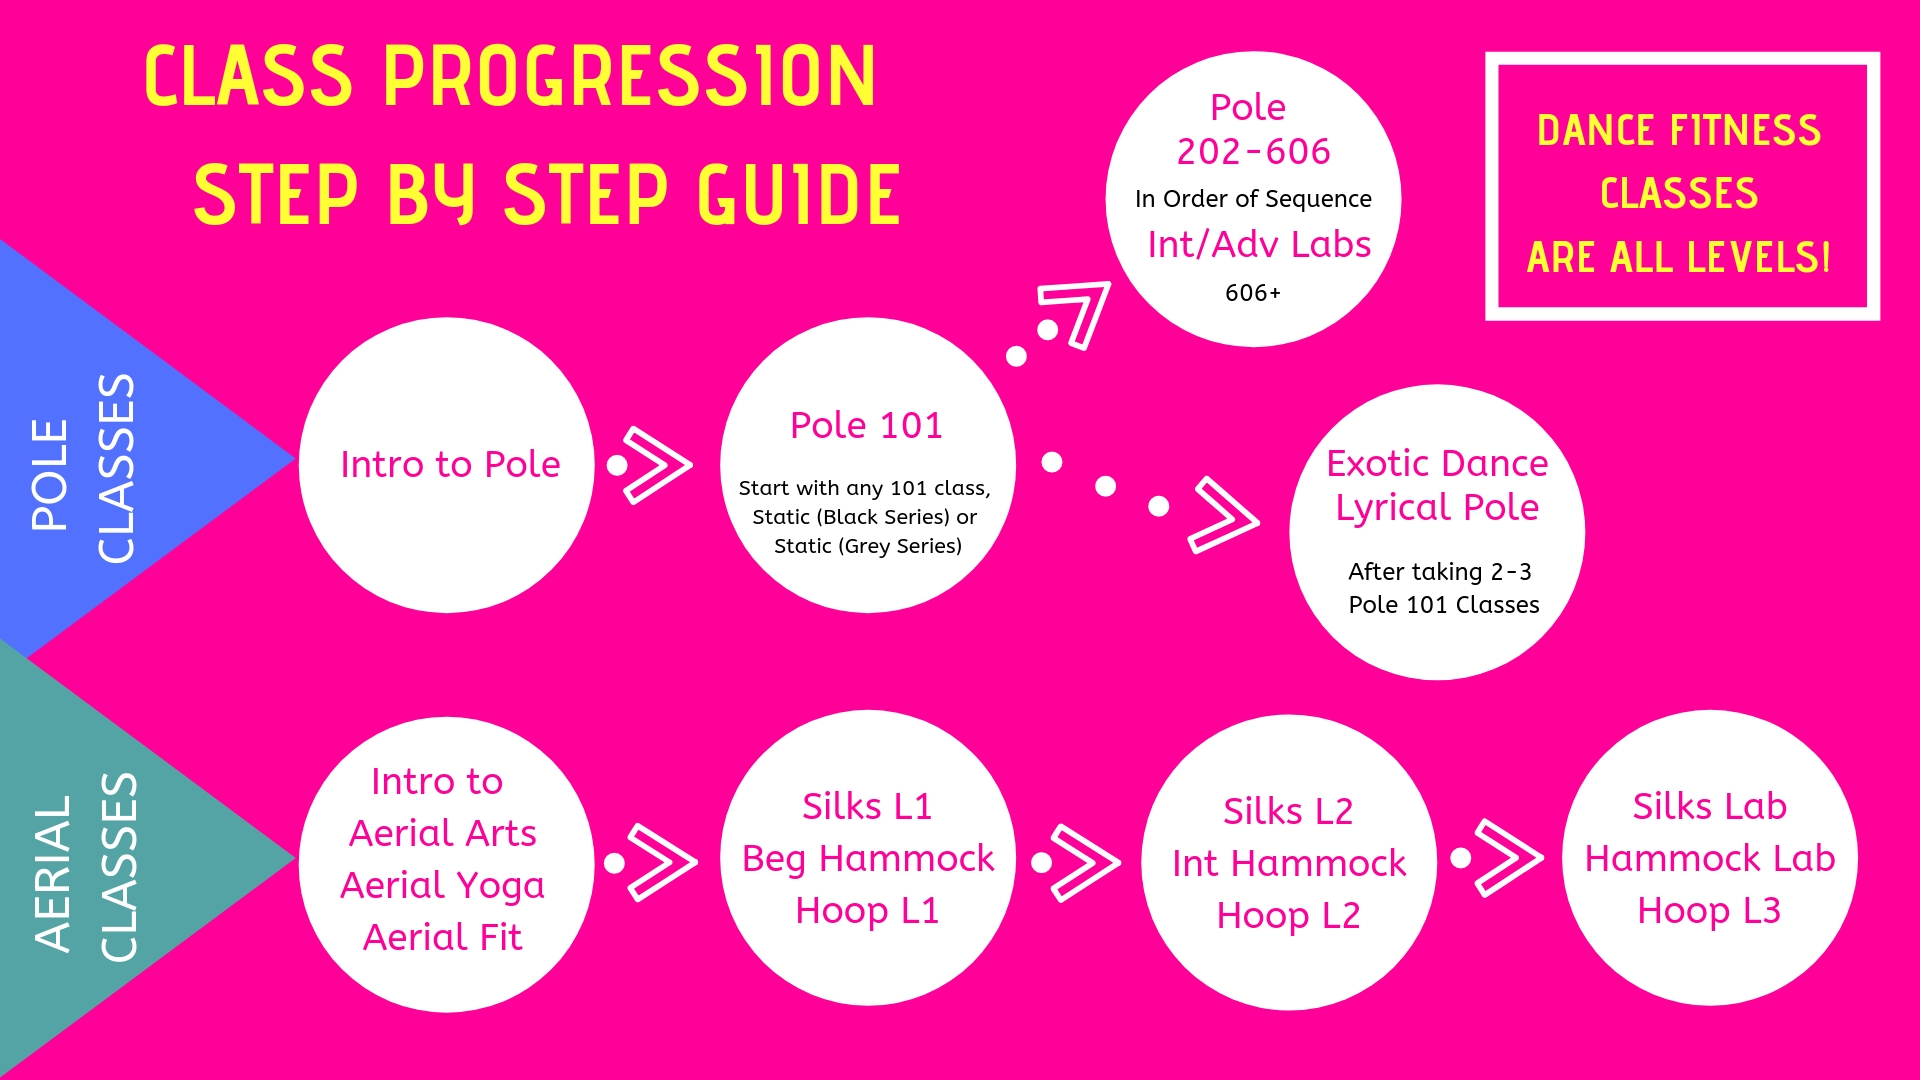 Class Progression Step-by-step Guide